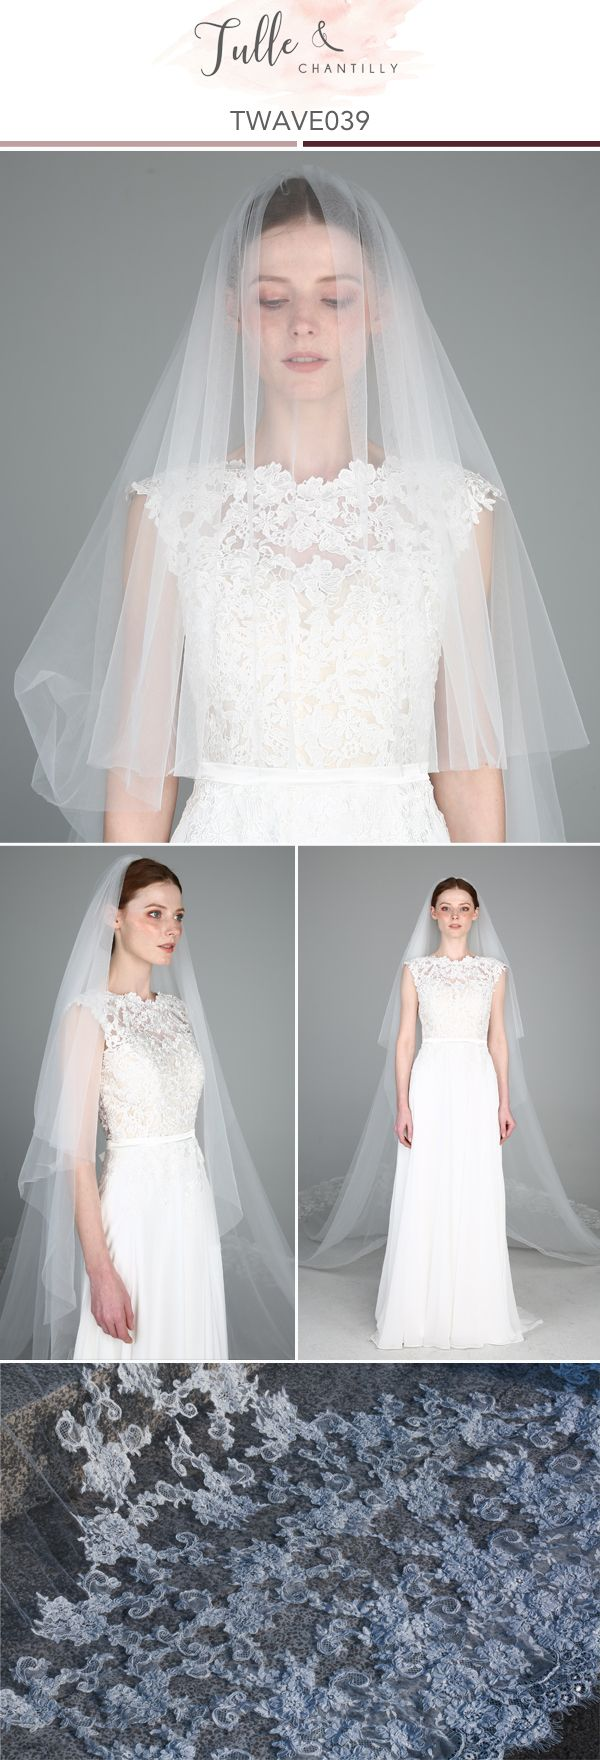 Cathedral Veil Single Tier Lace Veil Wellding bridal Veil